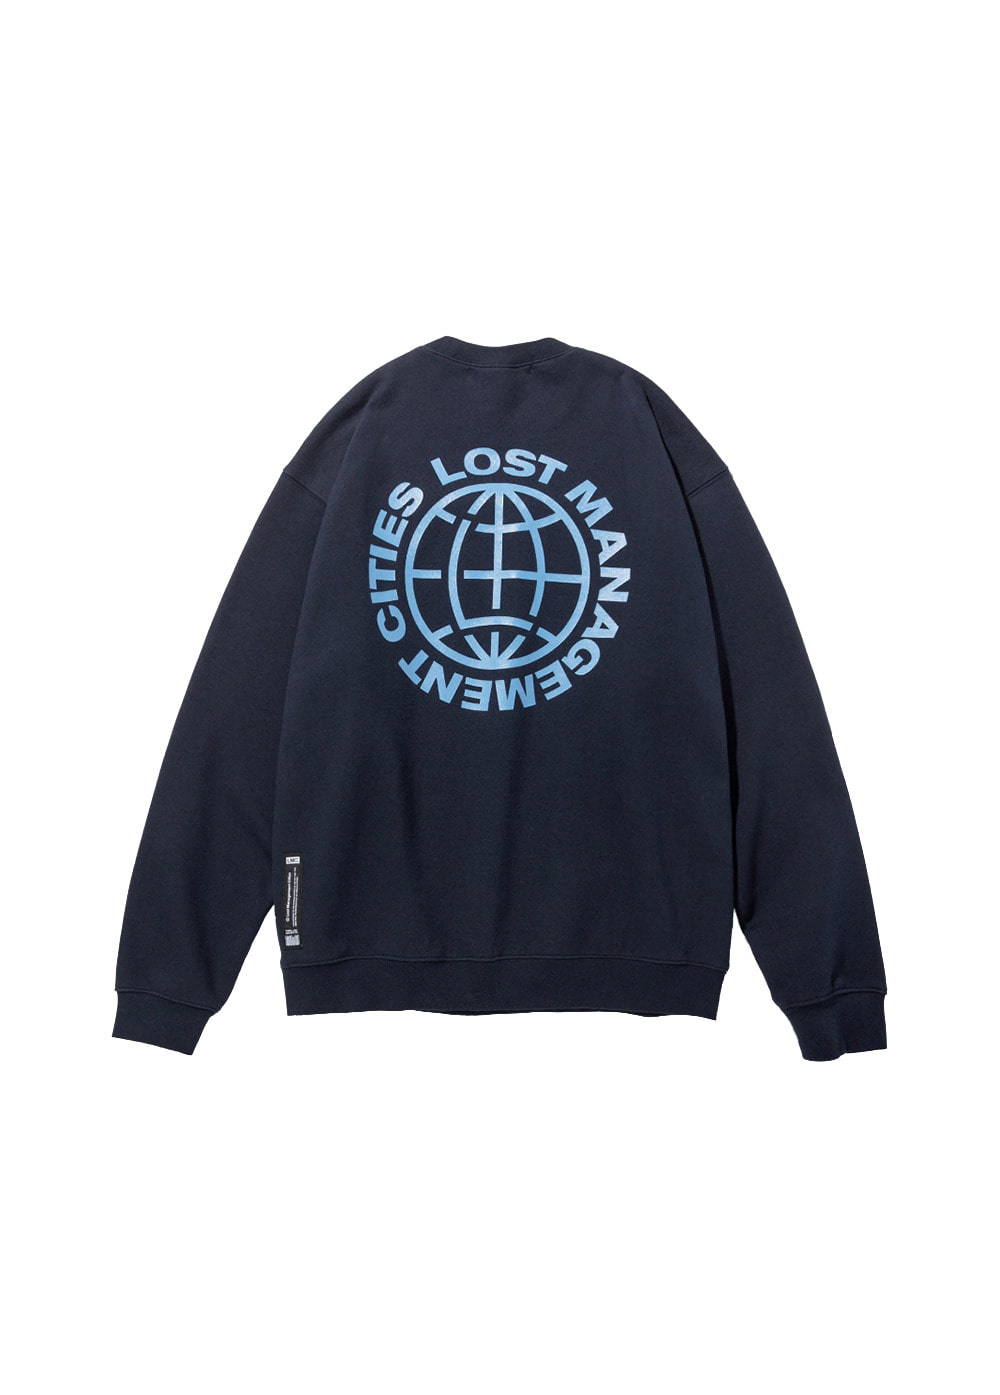 LMC OG WHEEL SWEATSHIRT navy